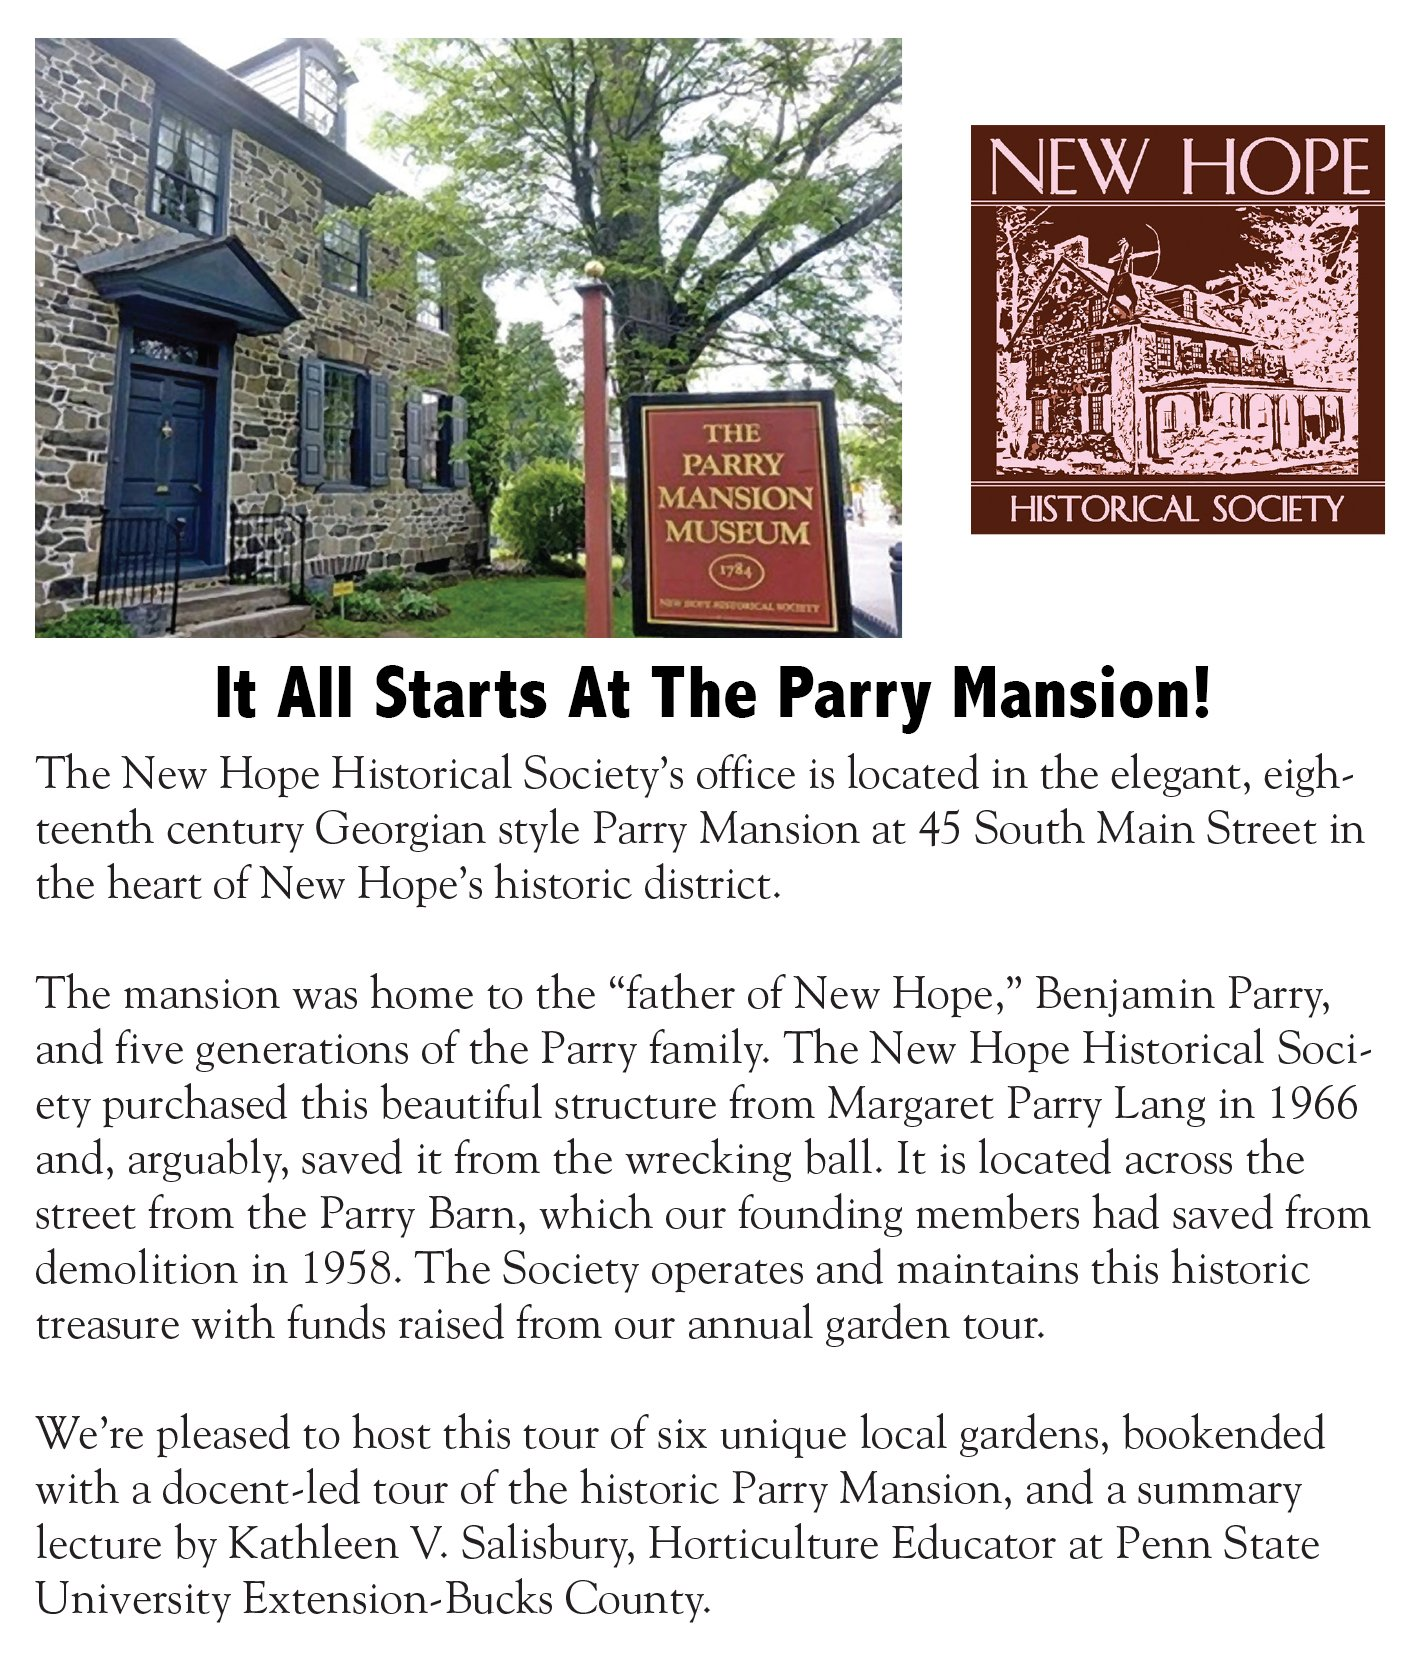 A flyer advertising the historical society's annual garden tour at Perry Mansion.